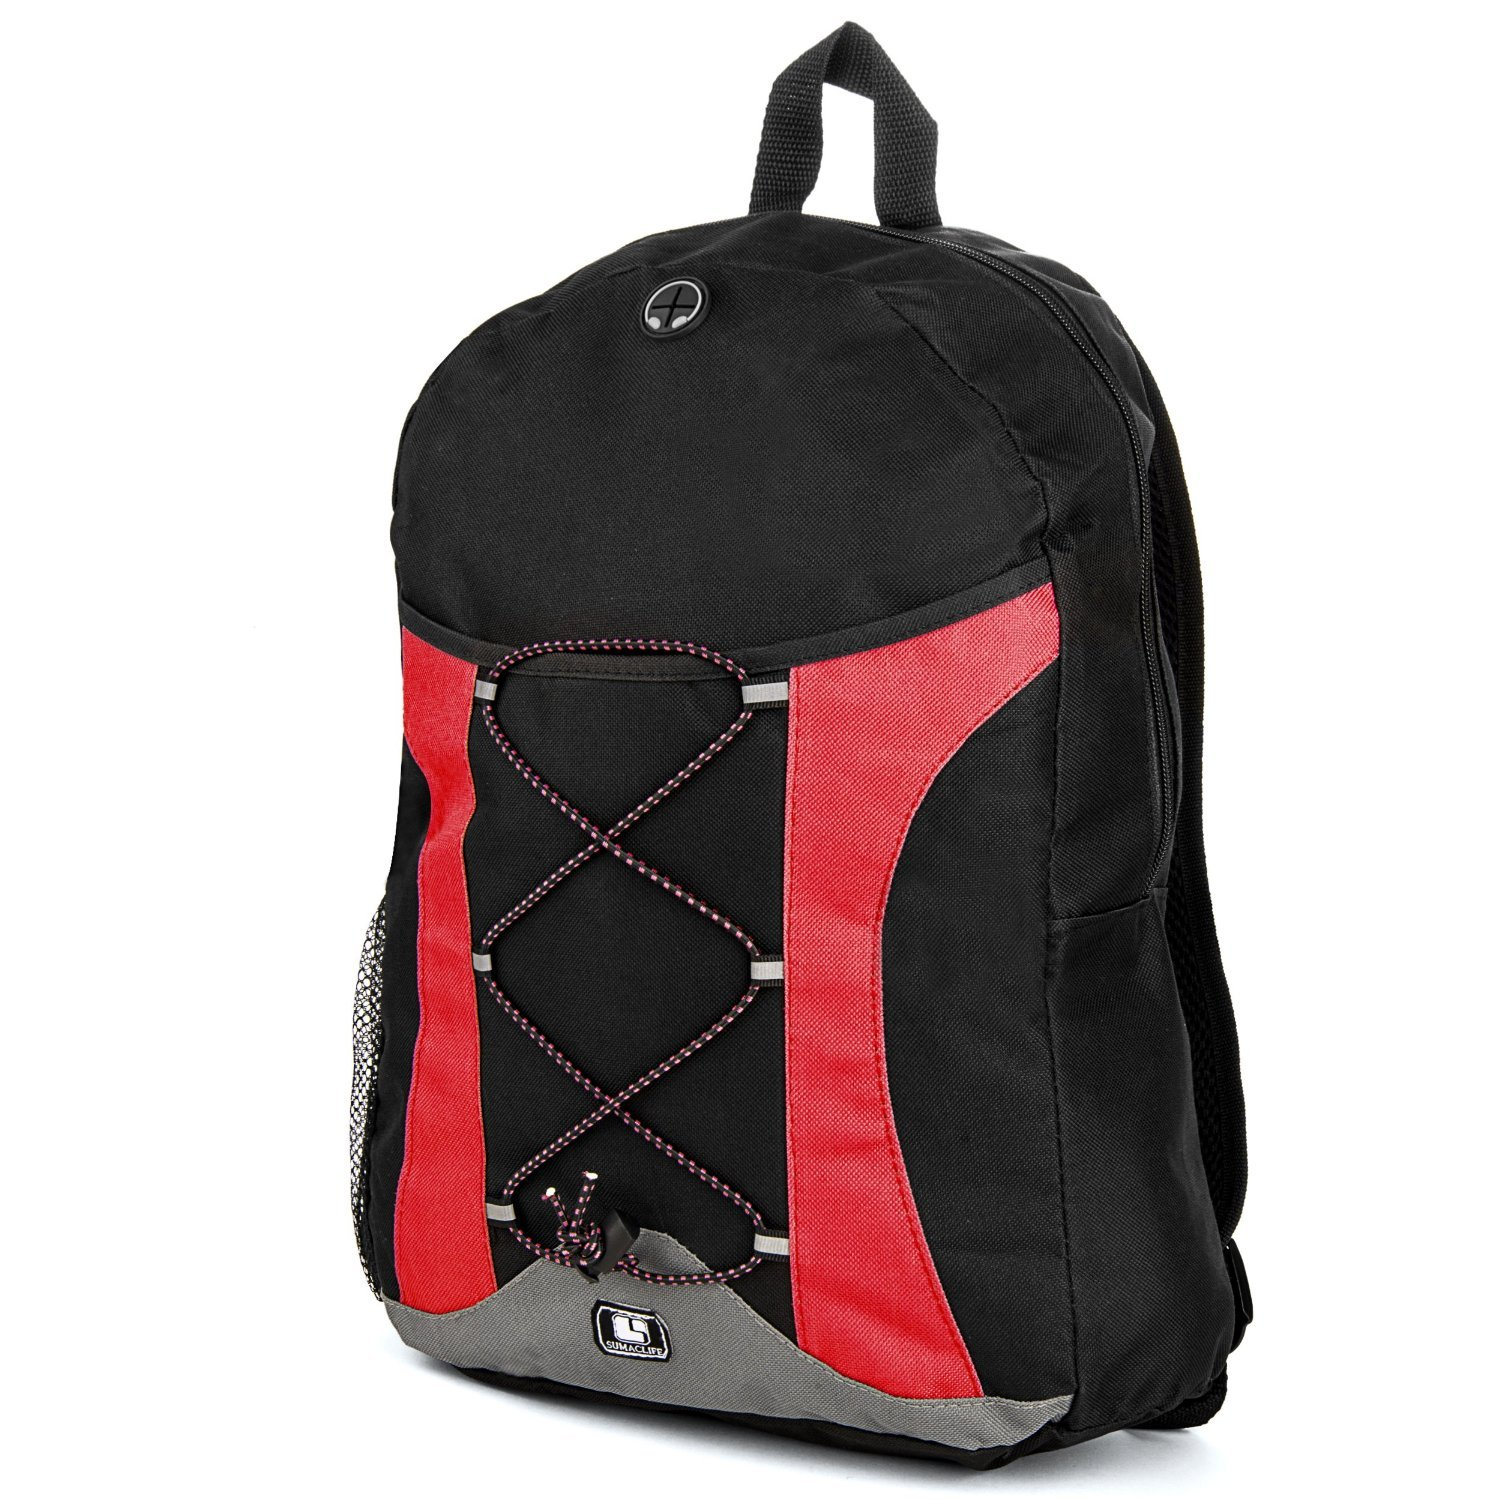 "free shipping SumacLife Canvas Athletic Ultra-Lightweight Sport Backpack / Shoulder Bag / School Backpack / Trave Bag / Laptop Bag Fits 14"" 15"" 16"" inch(Red/Black)"